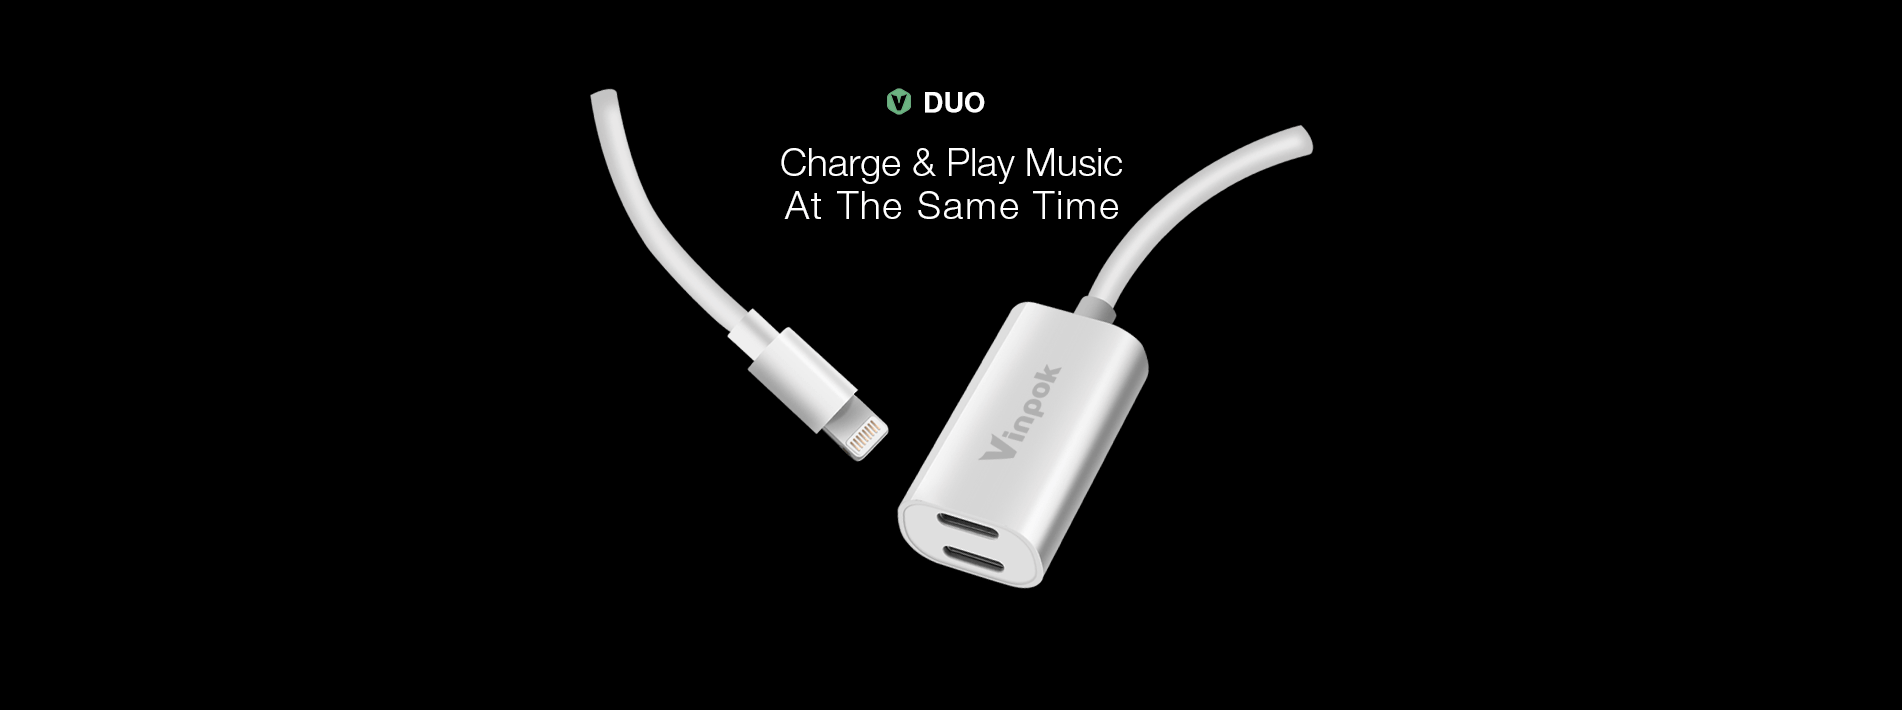 charge & play music at the same time